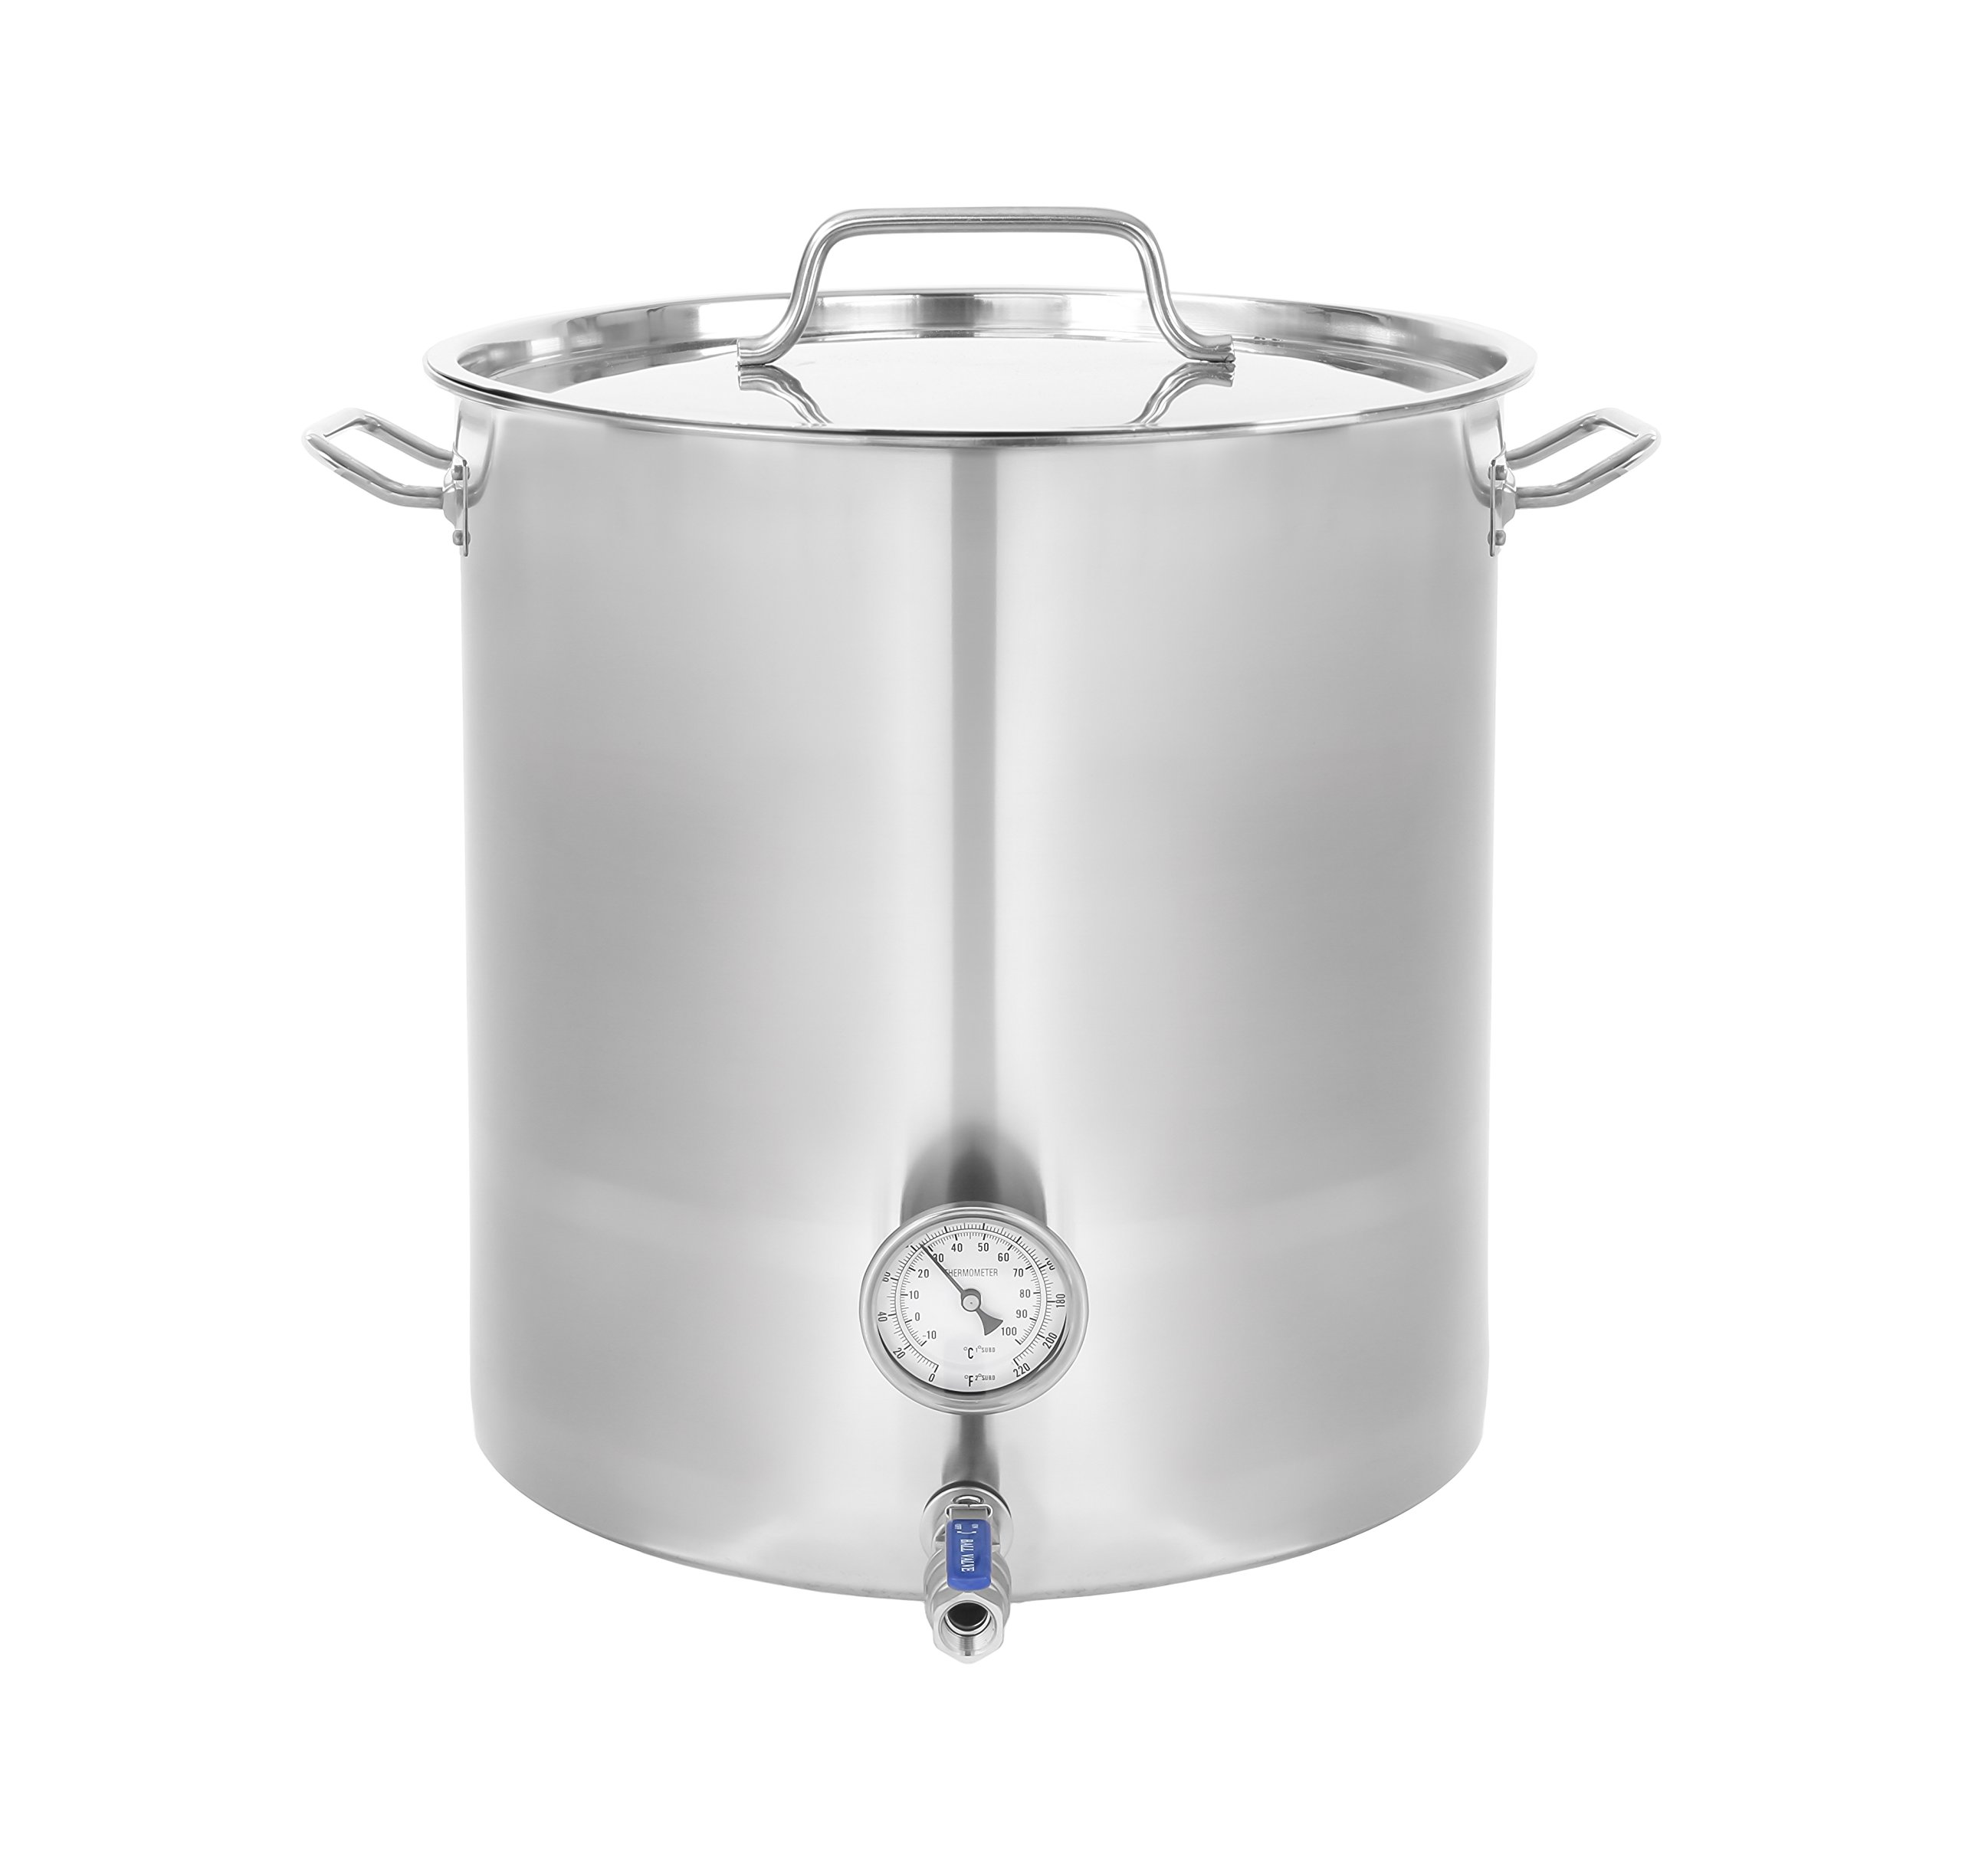 CONCORD Stainless Steel Home Brew Kettle Stock Pot (Weldless Fittings) TRIPLY BOTTOM VERSION (60 QT/ 15 Gal)